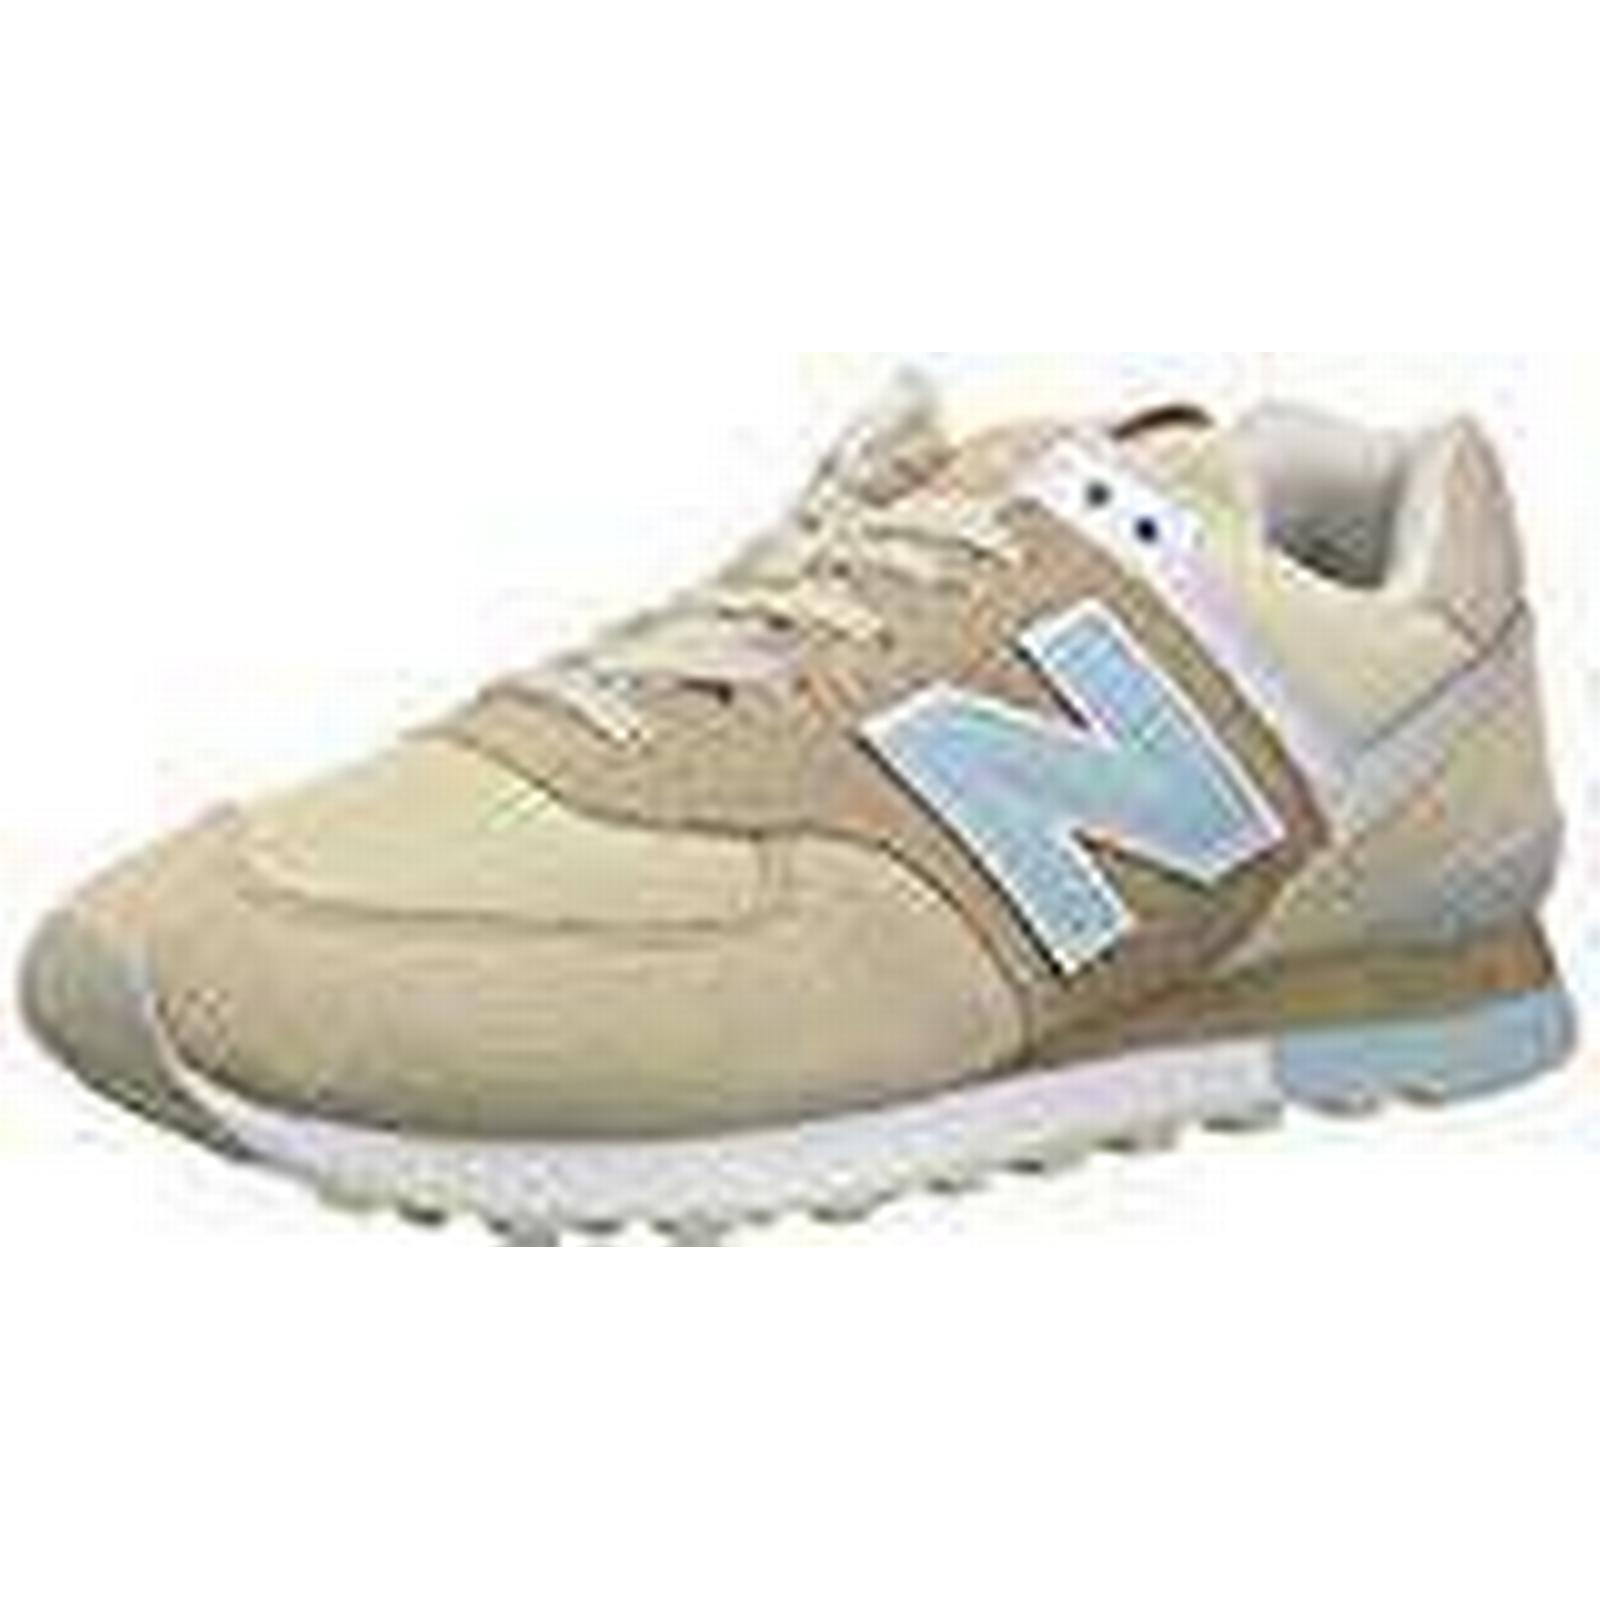 New Balance Ml574V2, Men Low-Top, (45 Multicolored (Beige/Blue), 10.5 UK (45 Low-Top, EU) e8c65f